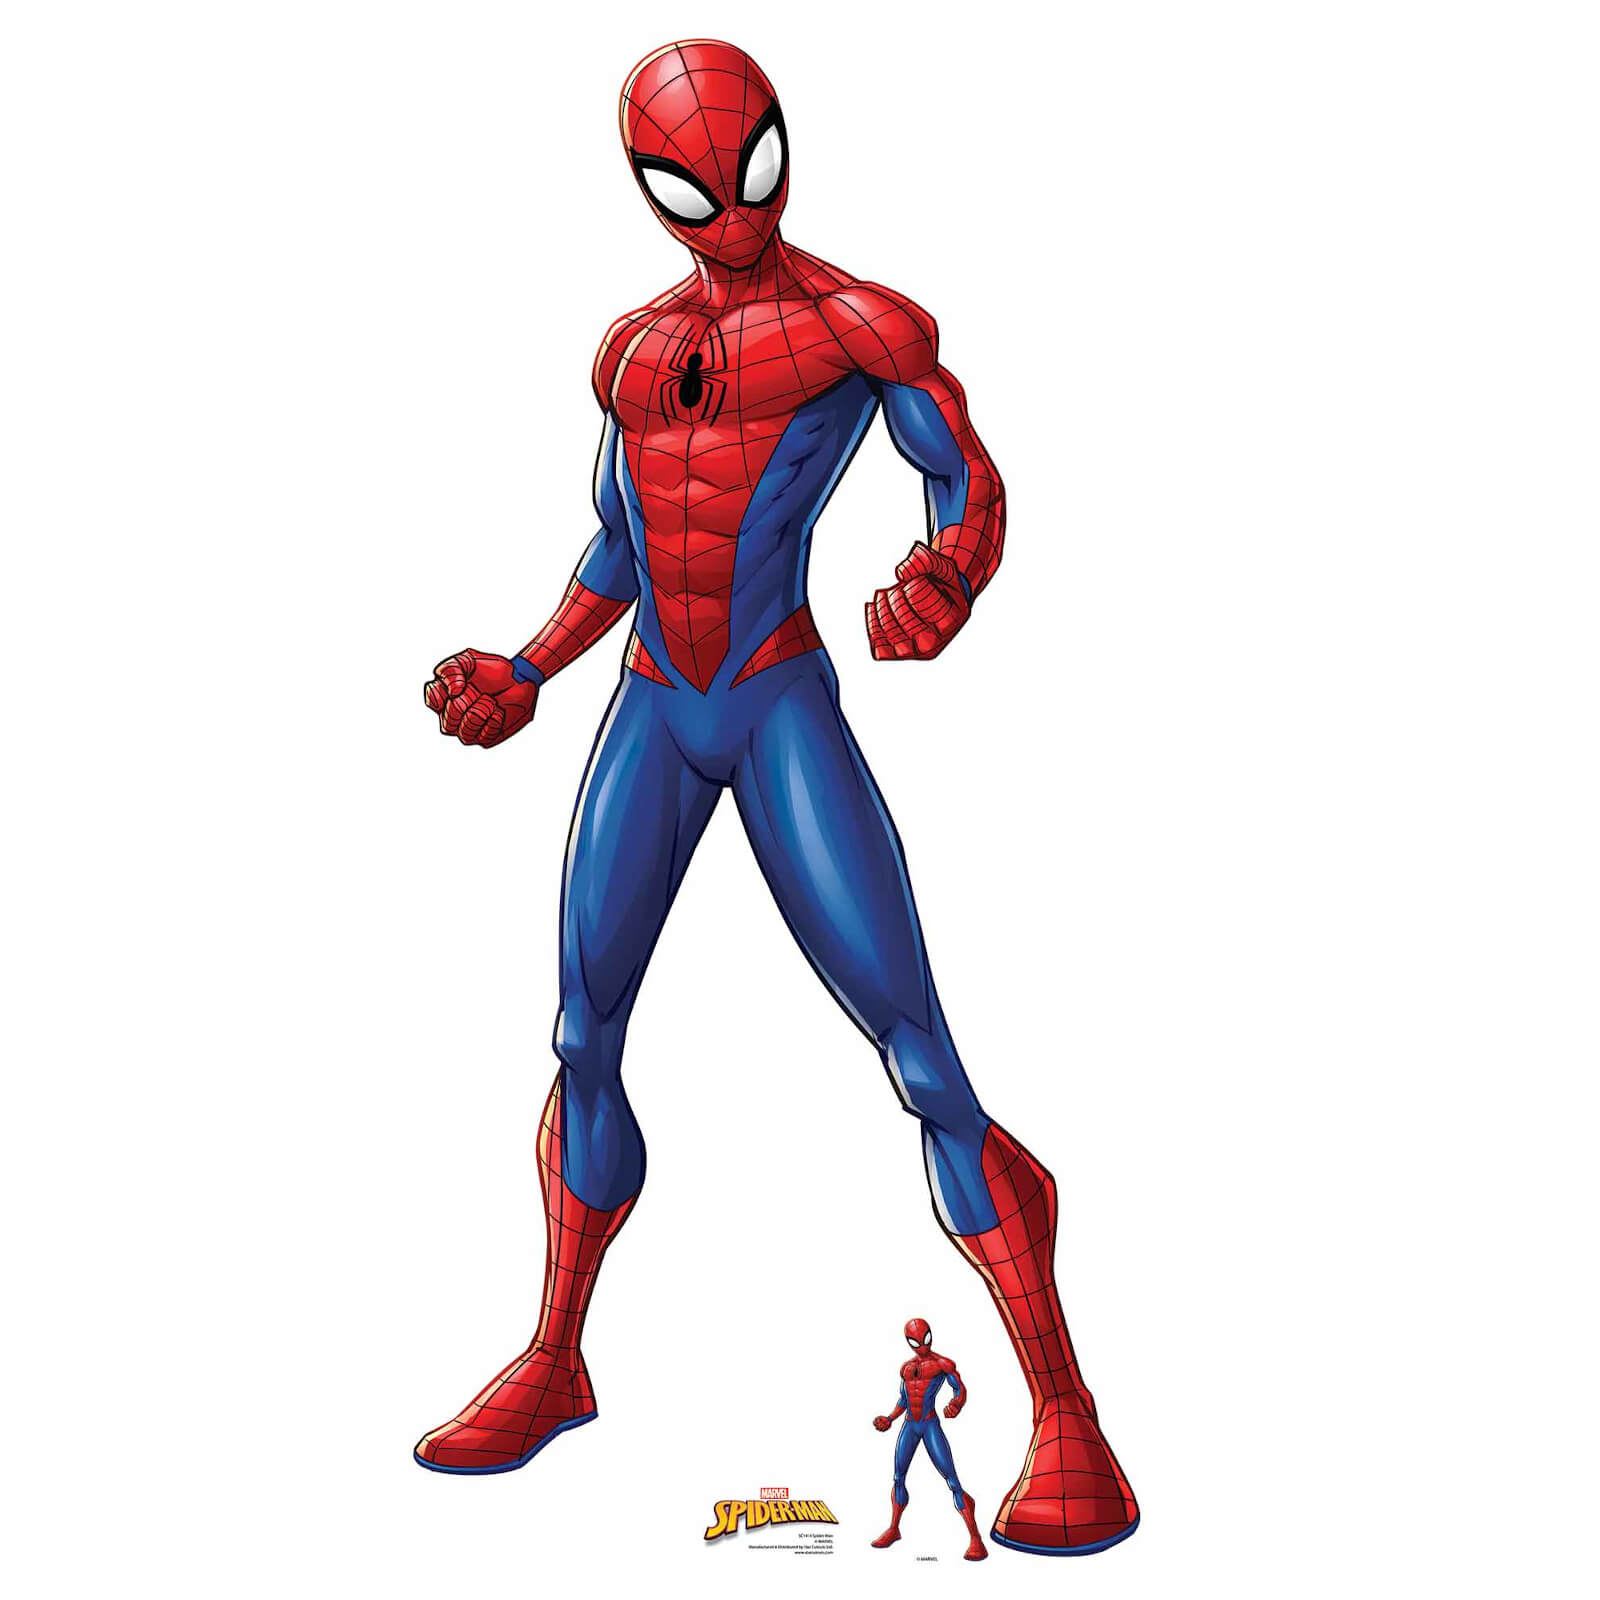 Image of Spider-Man - Spiderverse Oversized Cardboard Cut Out